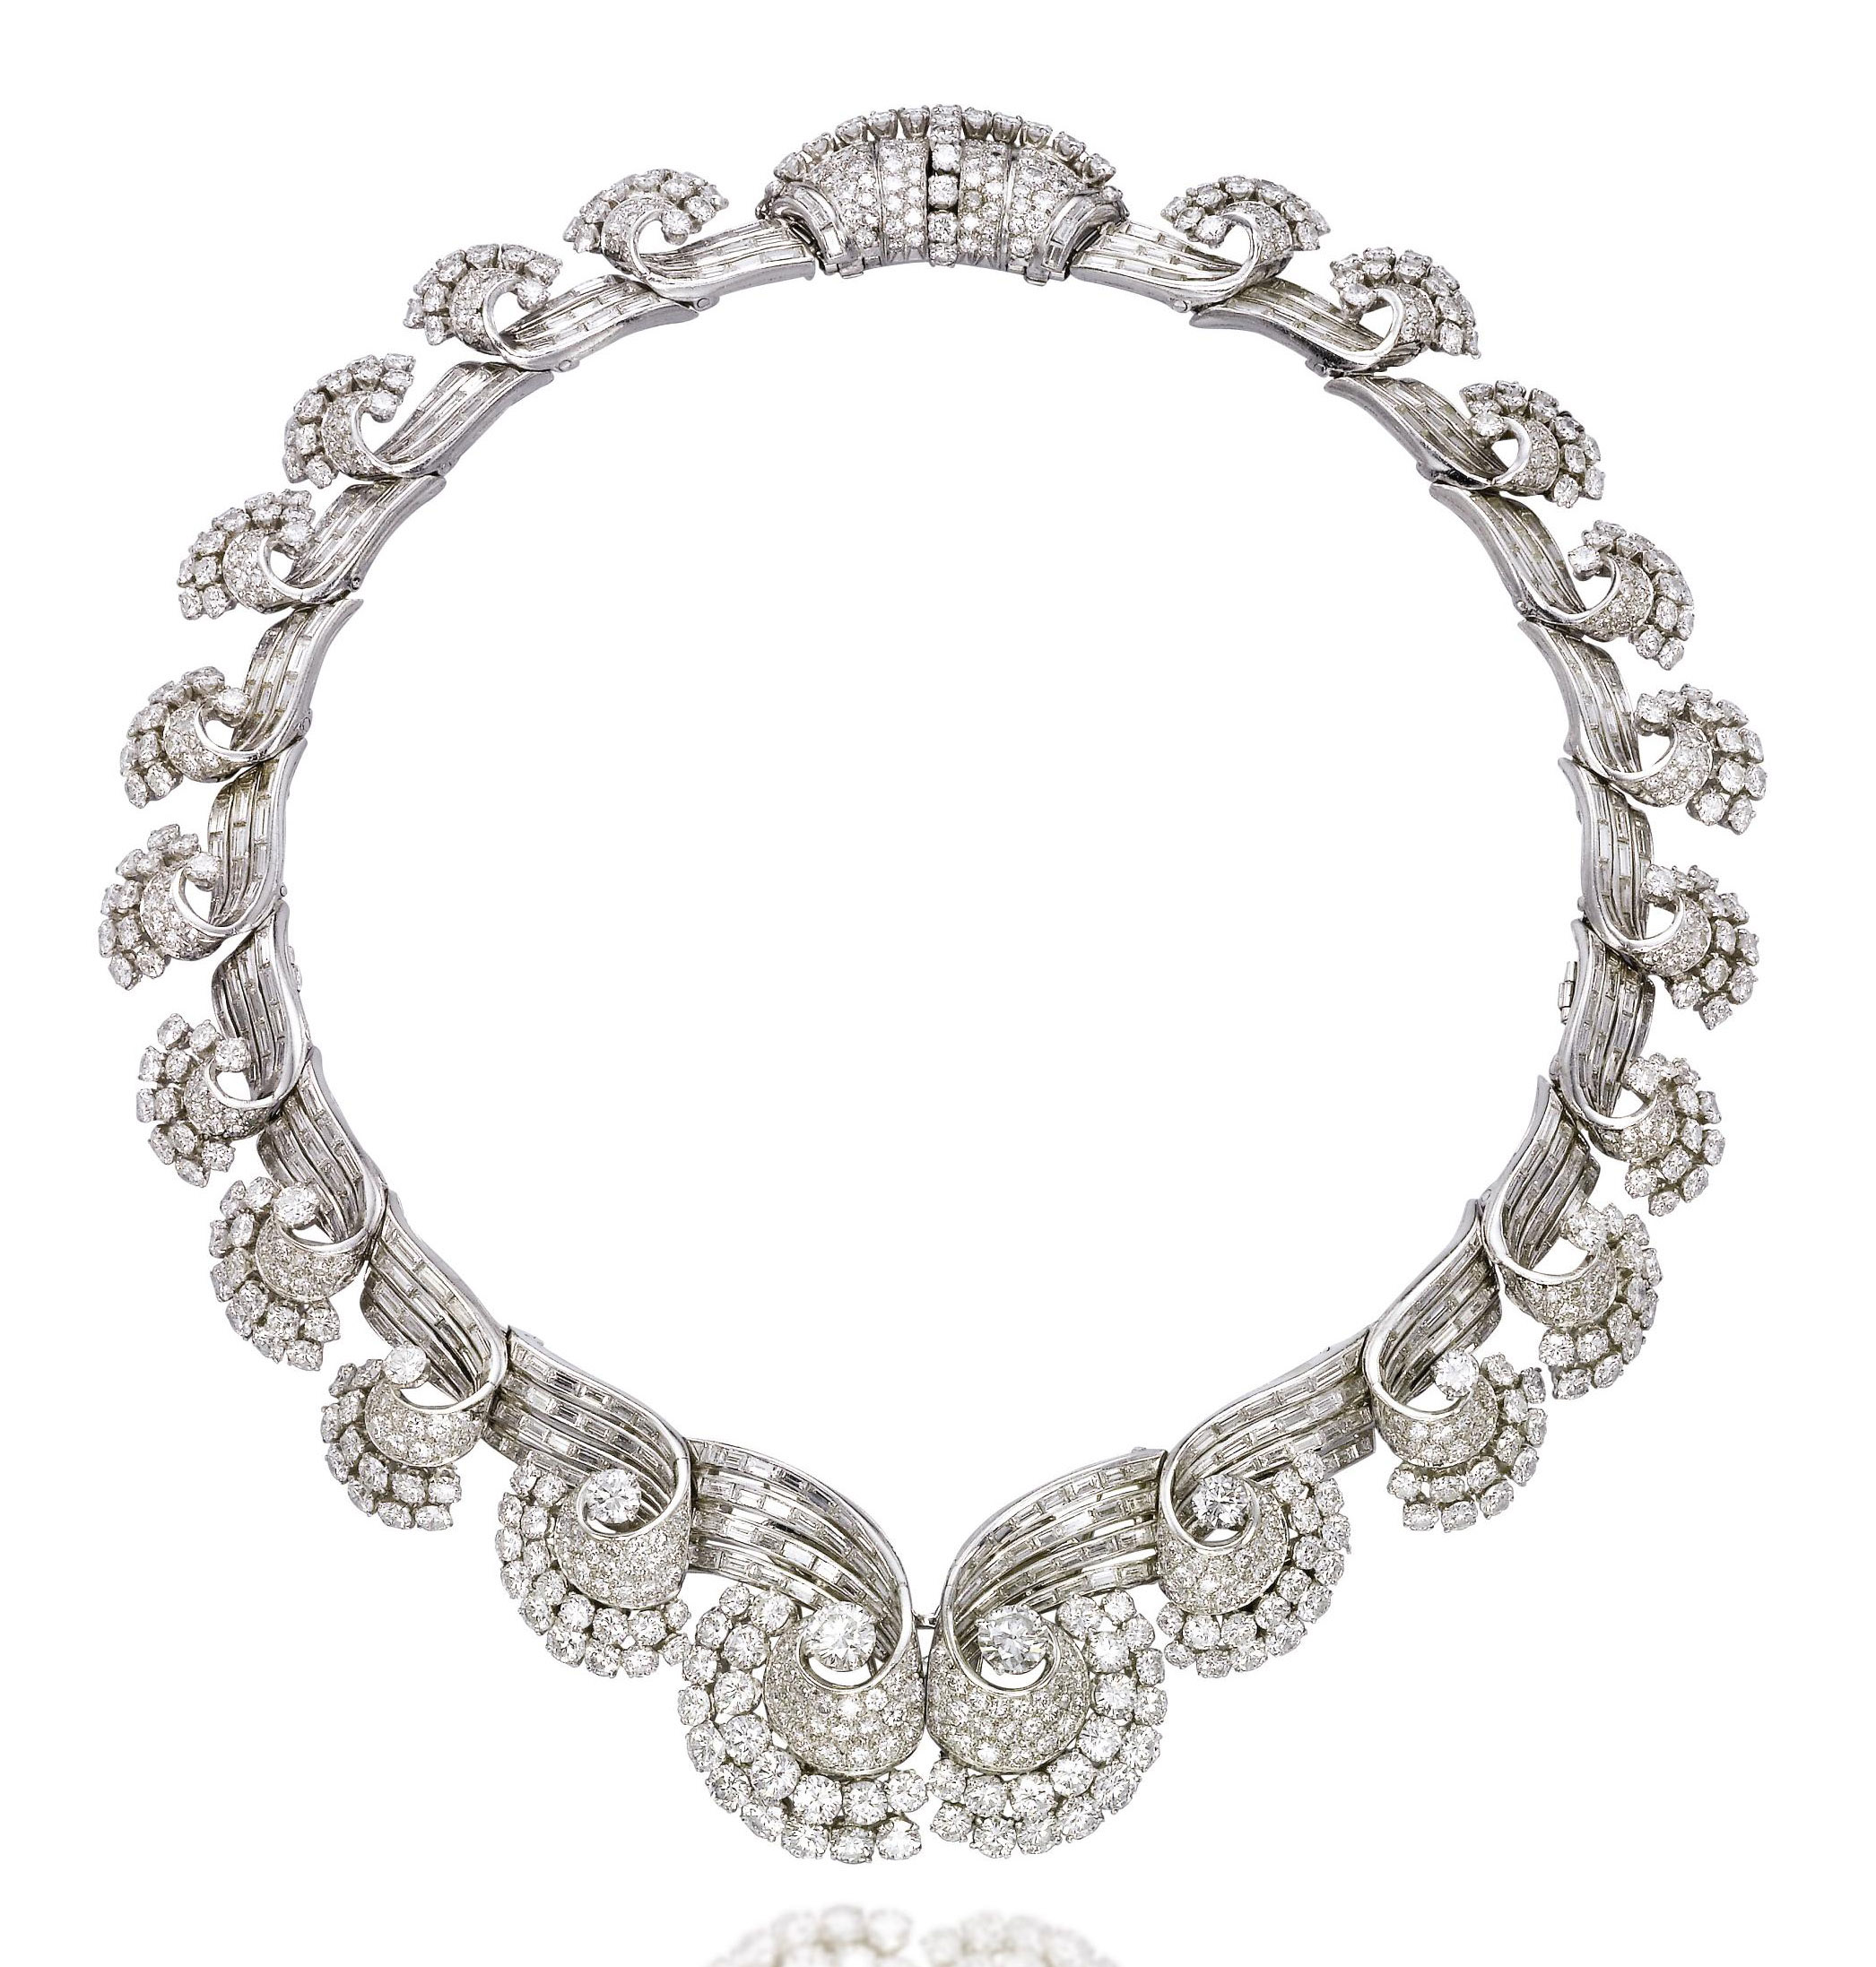 AN ART DECO DIAMOND NECKLACE, BY RENÉ BOIVIN